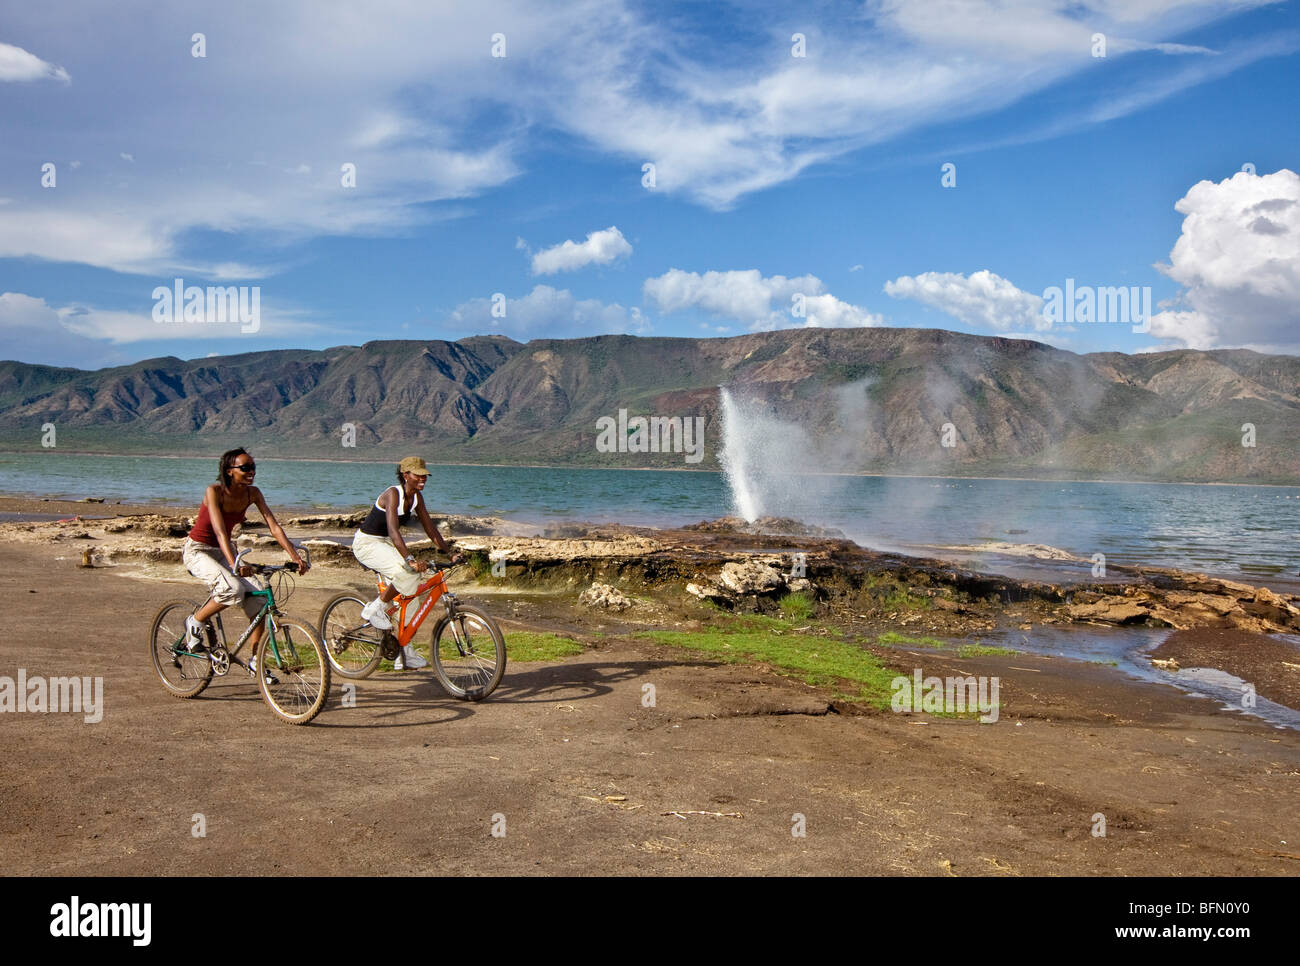 Cycle Stock Photos & Cycle Stock Images - Alamy